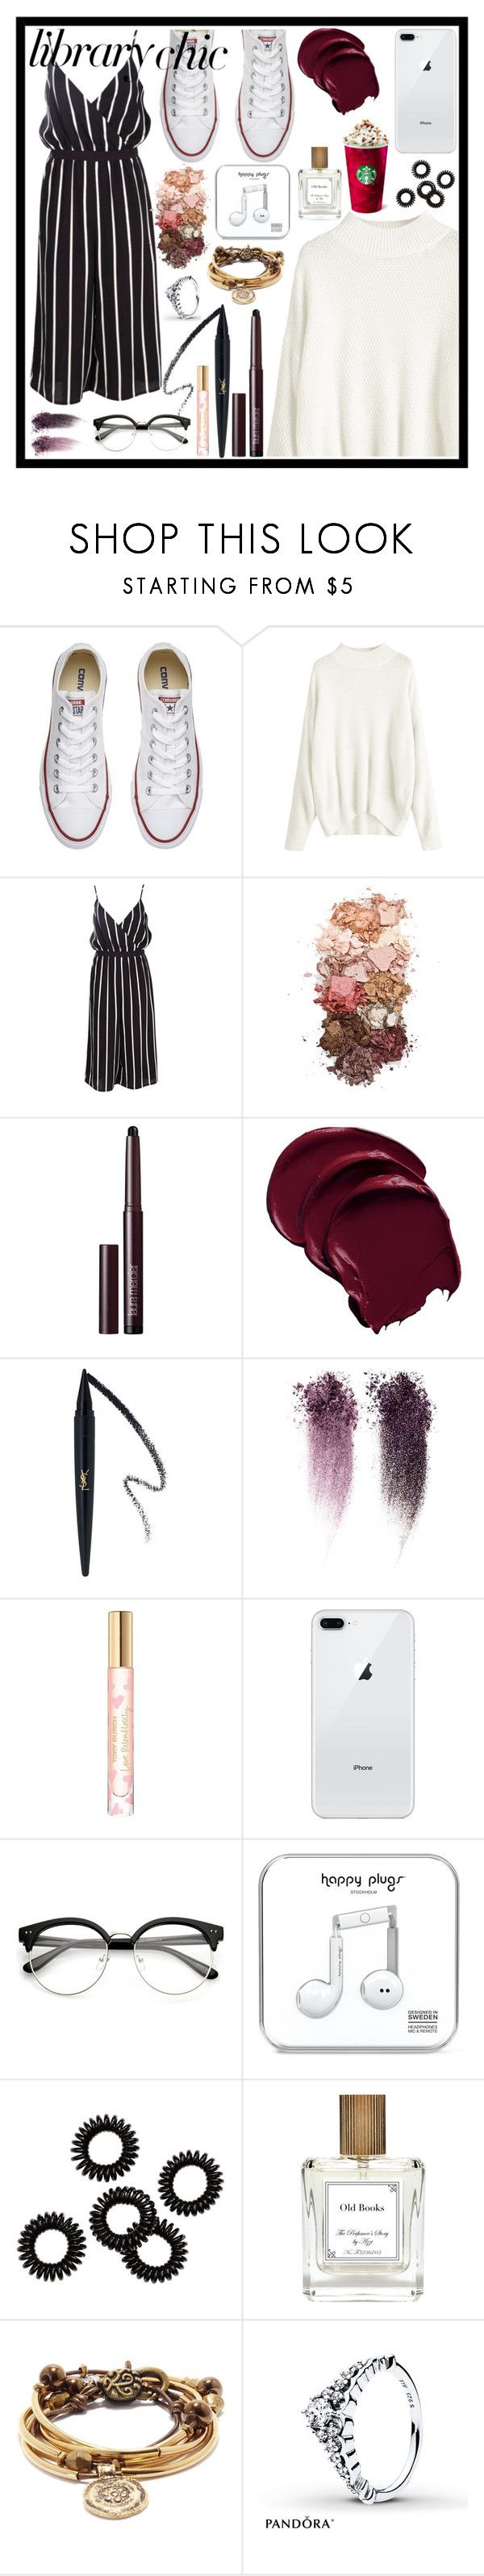 """FINALS SEASON- Library Chic"" by magicxx8 ❤ liked on Polyvore featuring Converse, Boohoo, Sigma, Laura Mercier, Tory Burch, The Perfumer's Story by Azzi, Lizzy James, contestentry and librarychic"